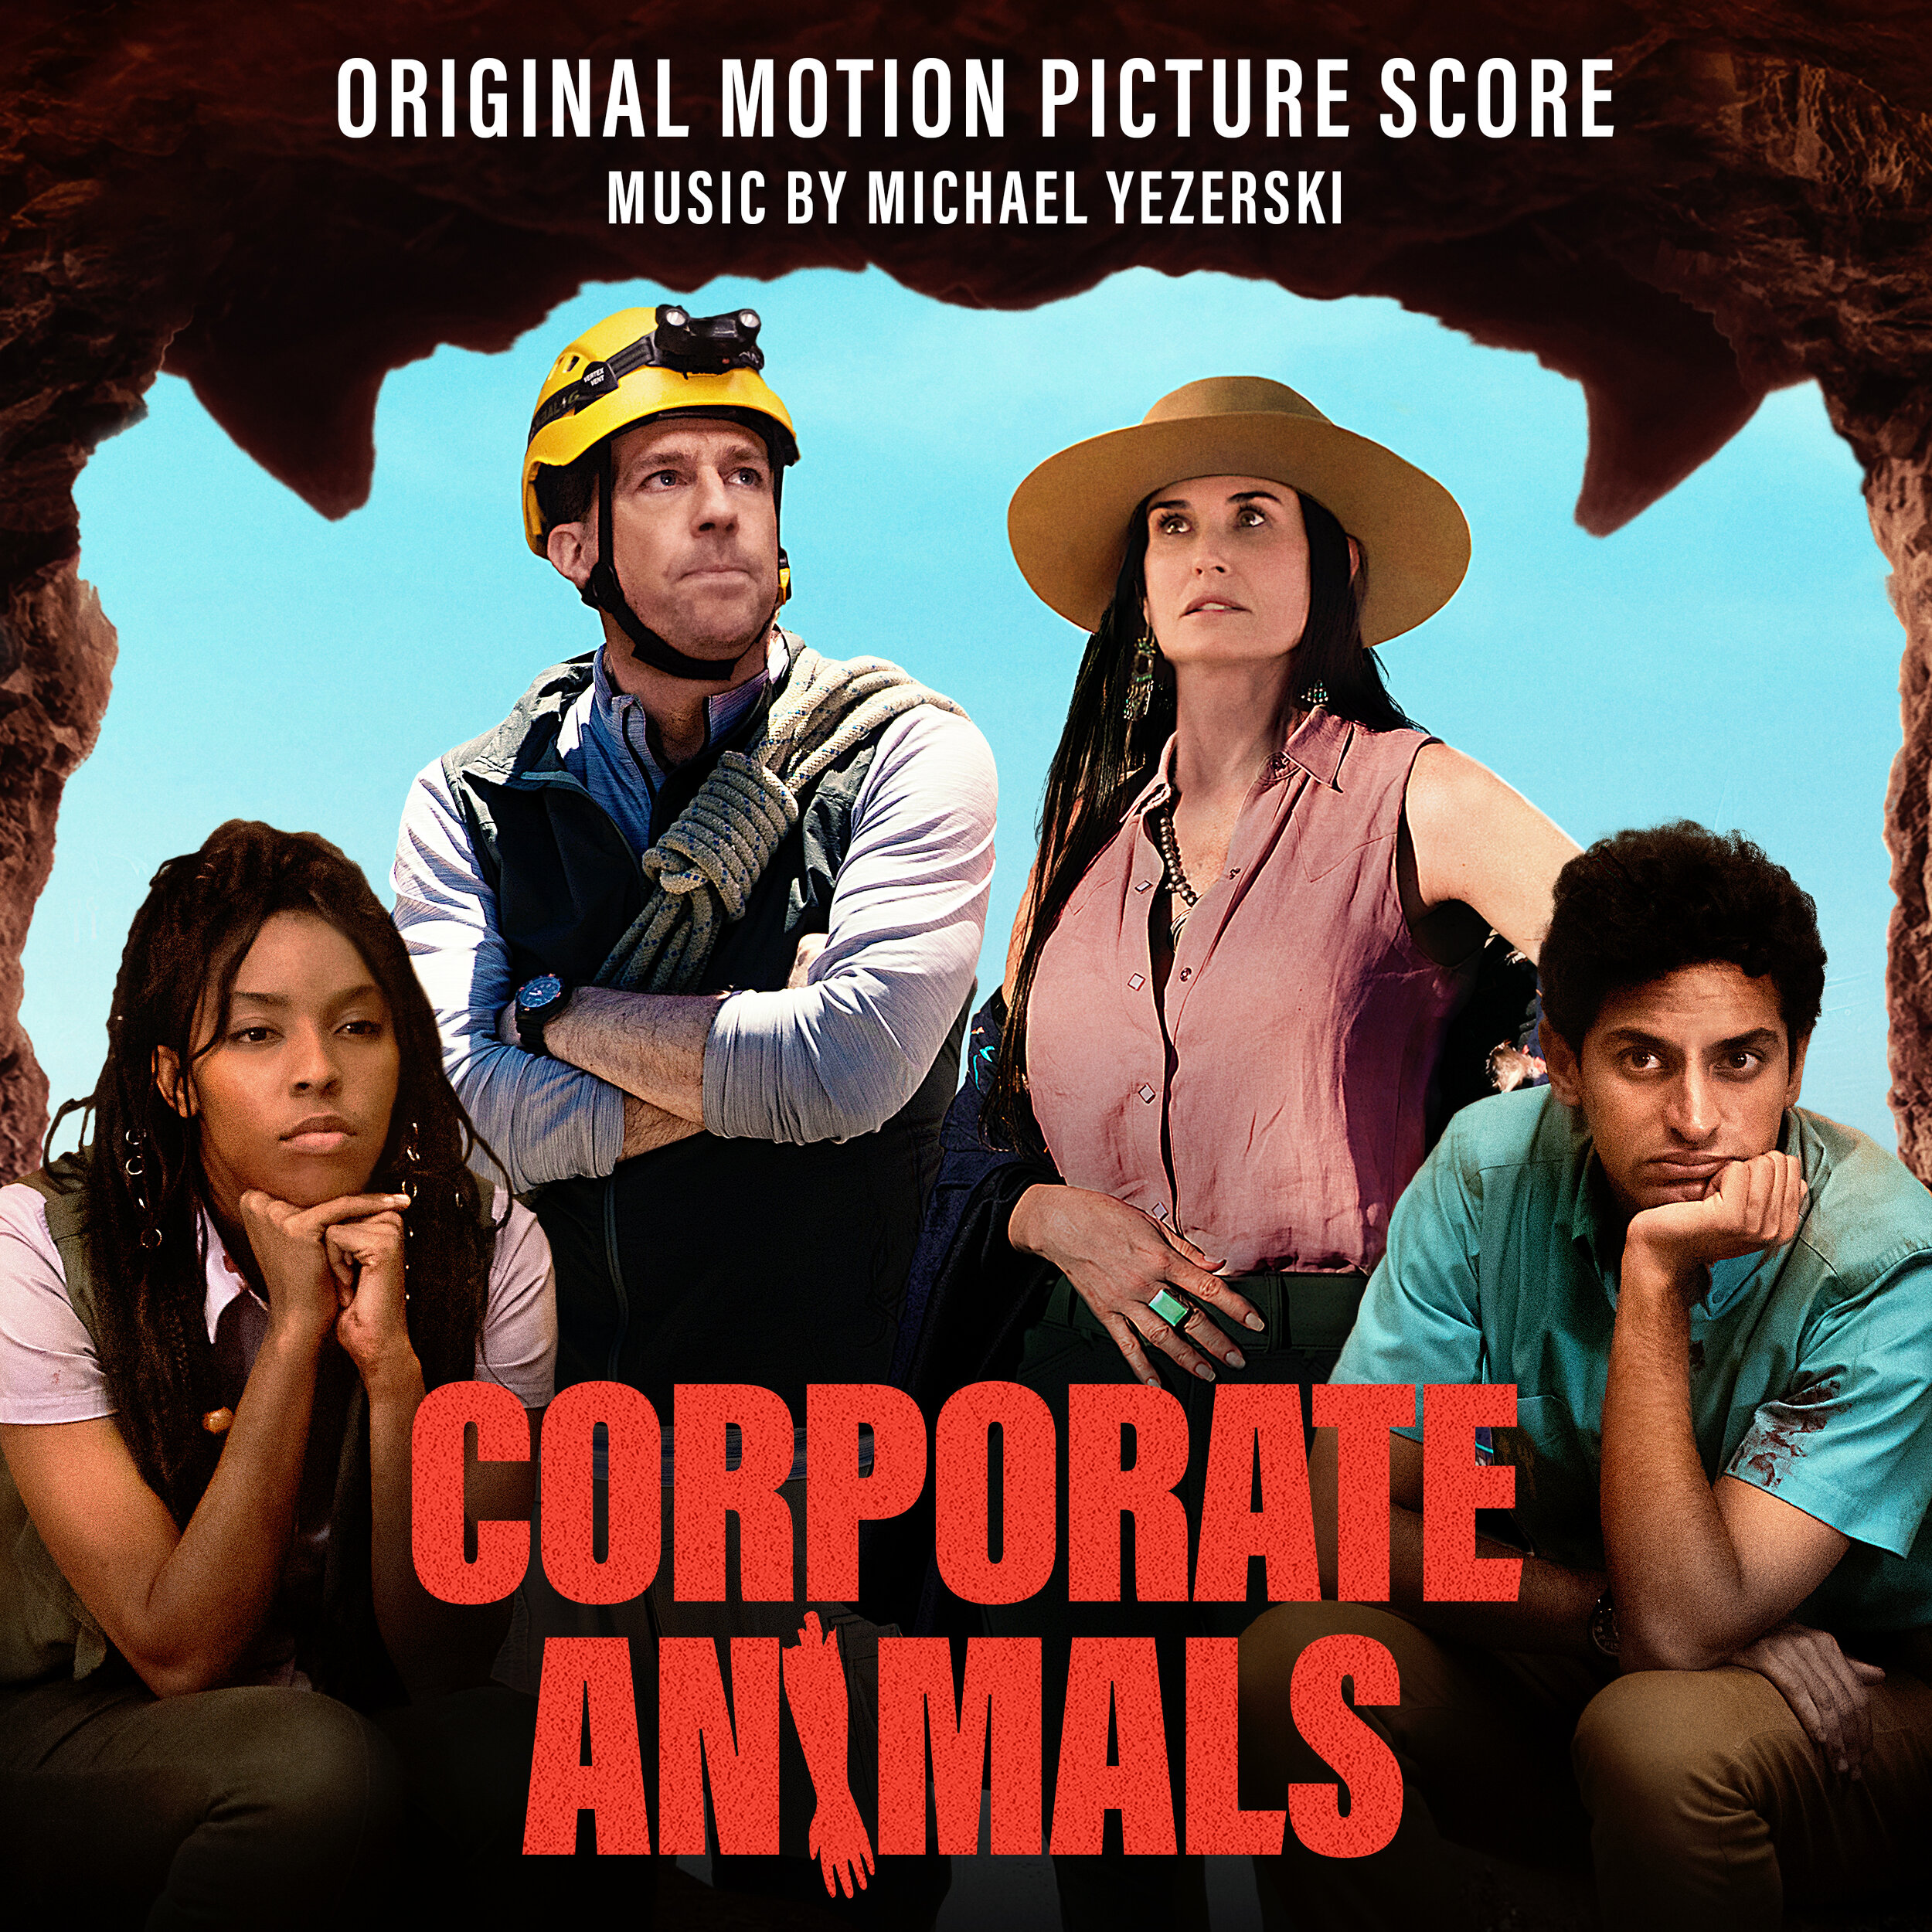 Snoot Music have released Michael Yezerski's score to Corporate Animals. Directed by Patrick Brice and produced by Ed Helms, Mike Falbo, Keith Calder and Jess Calder, the film premiered at Sundance in 2019.